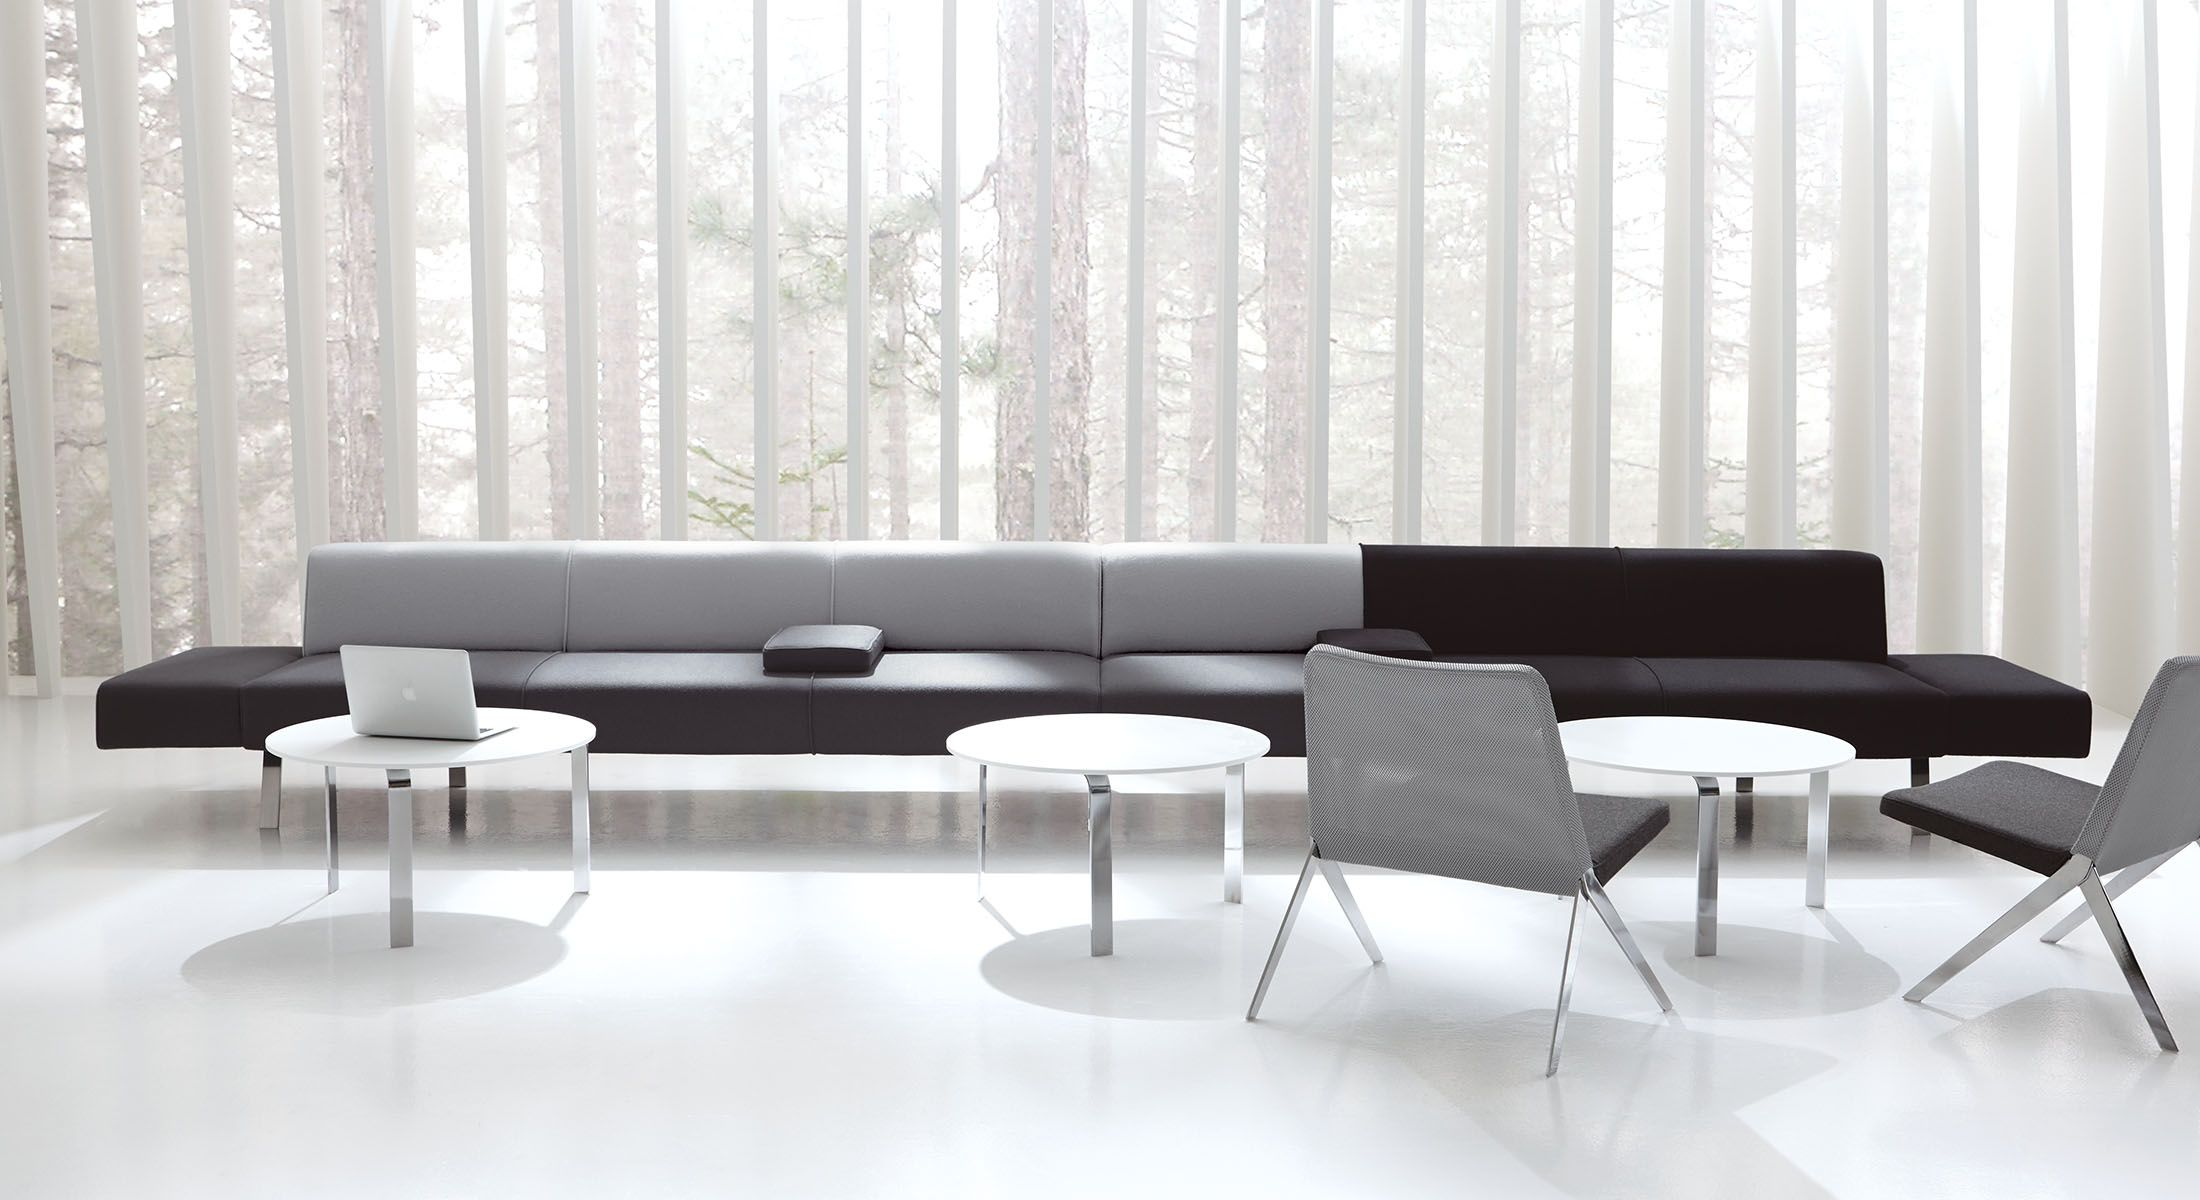 Spectrum Lounge Seating - Teknion Office Furniture | Furniture ...